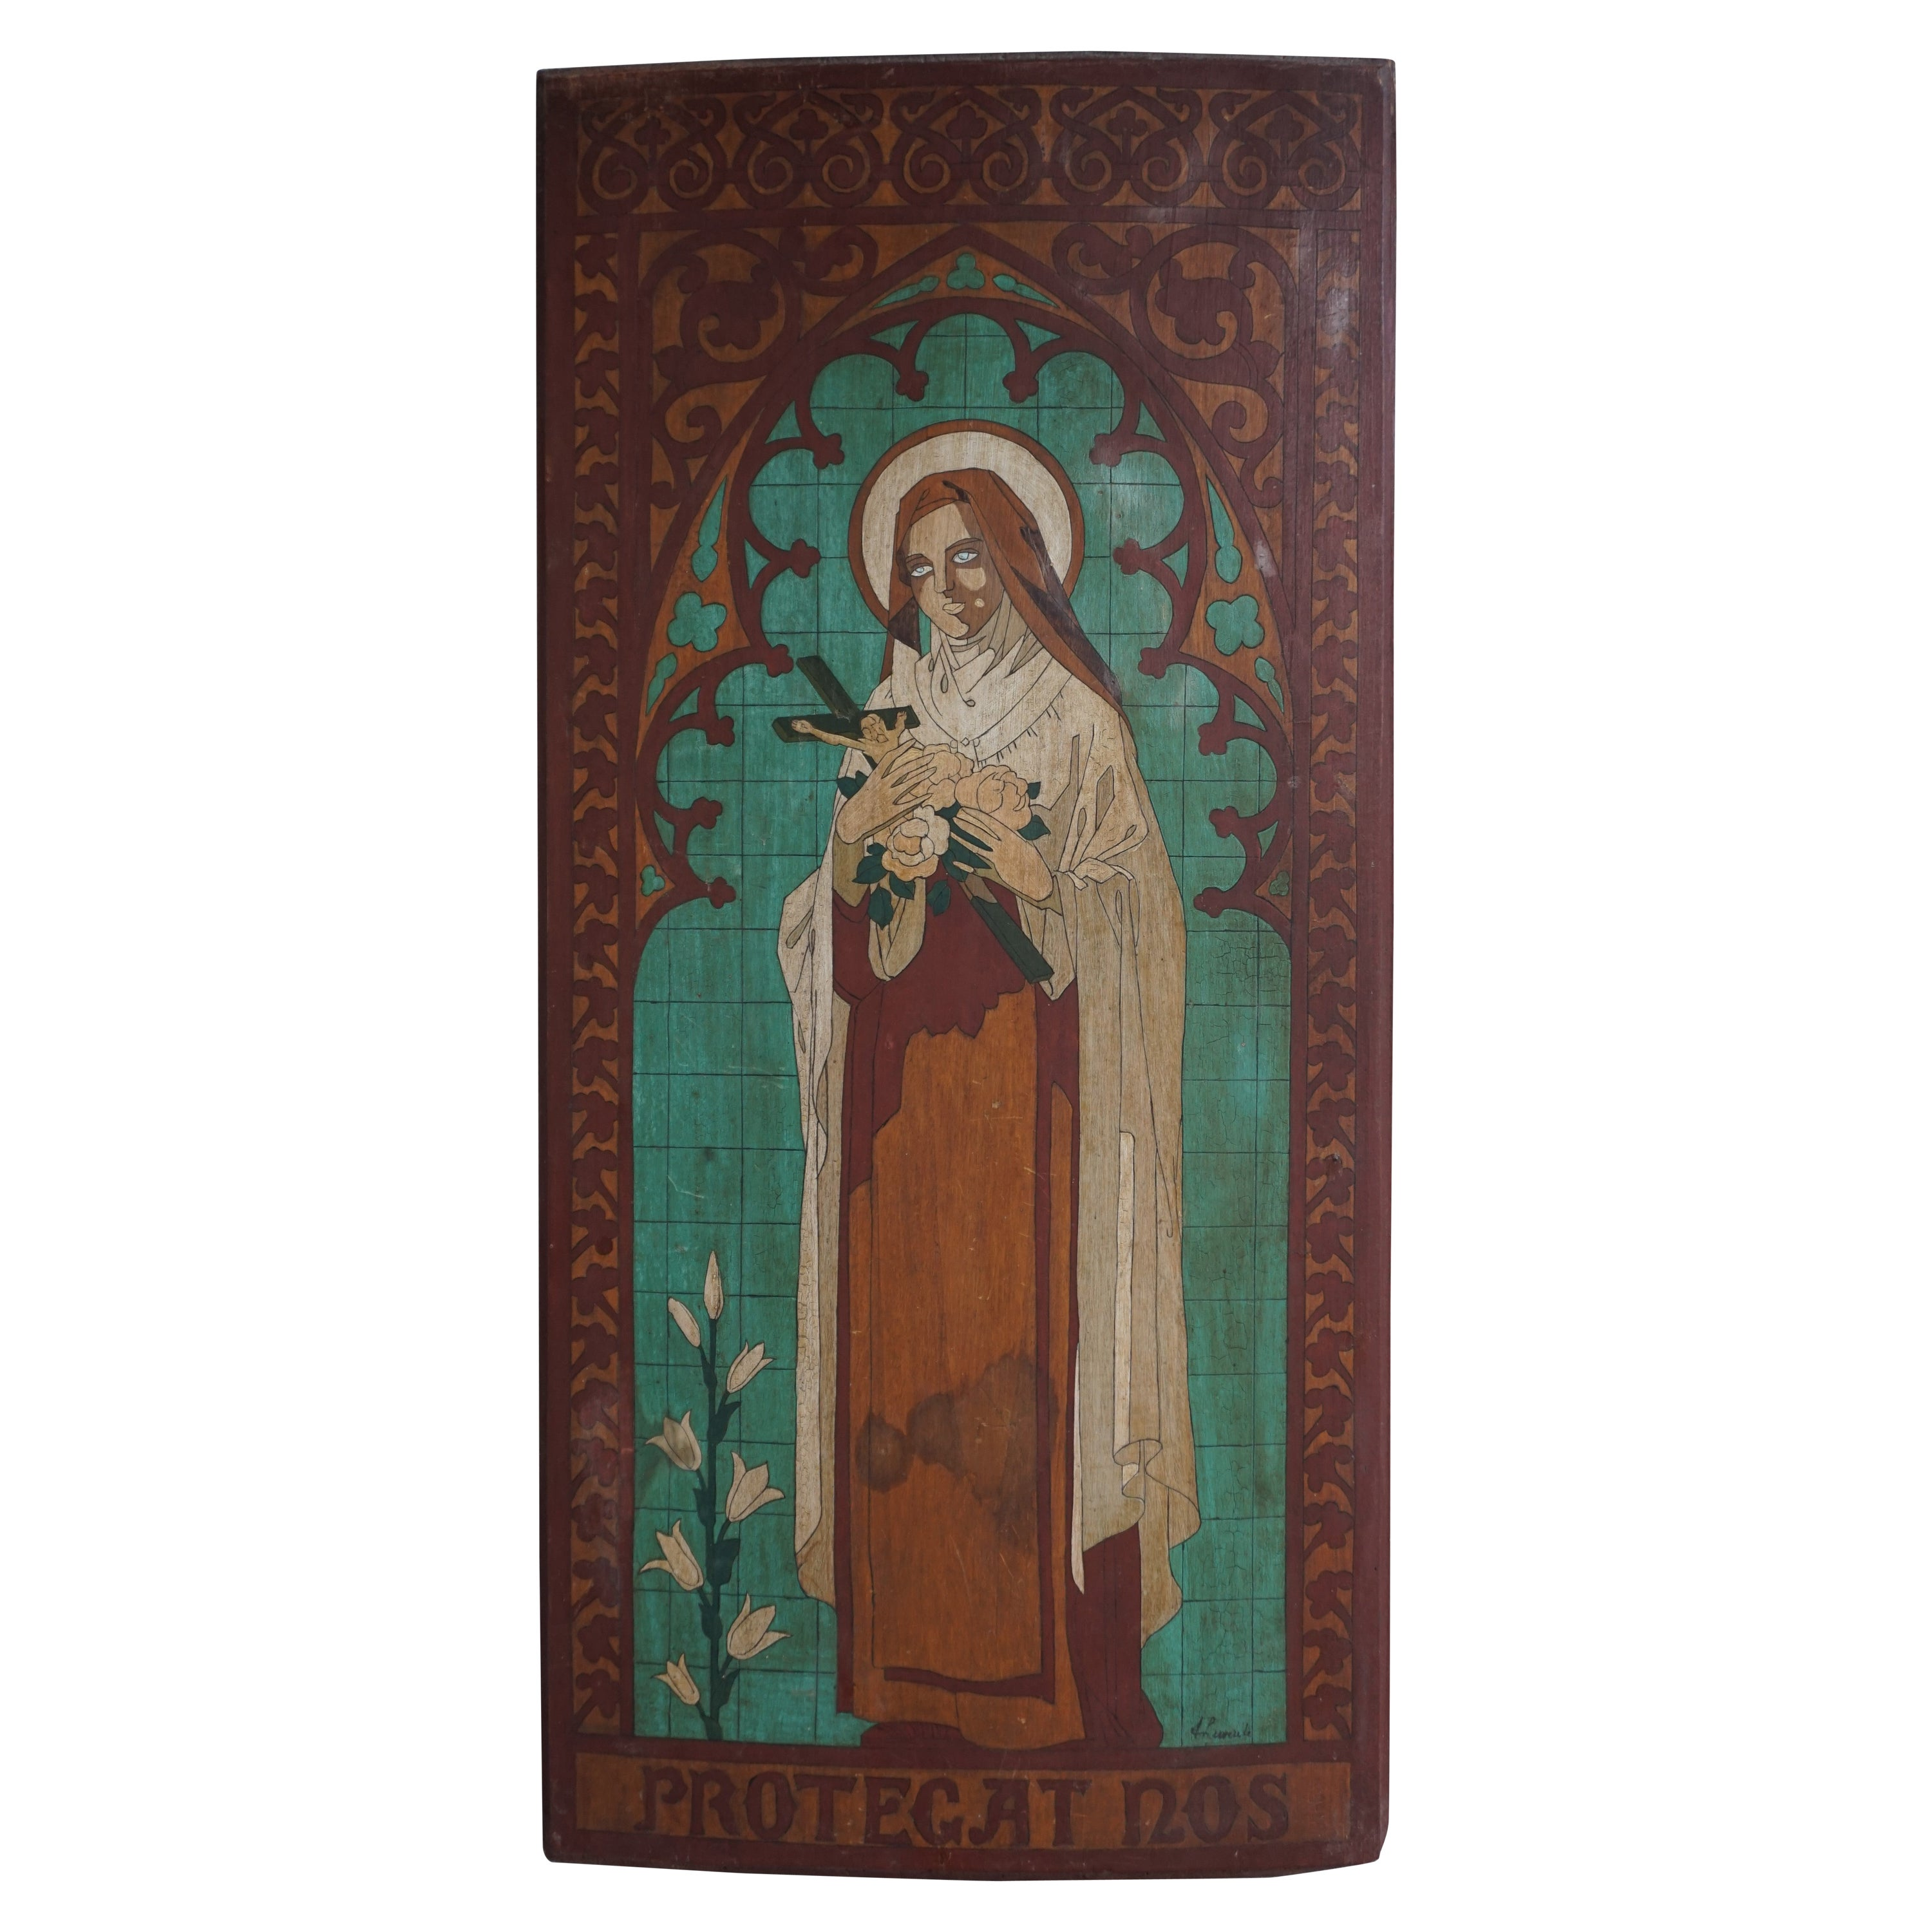 Antique Hand Painted Gothic Revival Wall Panel of Saint Theresia of Lisieux